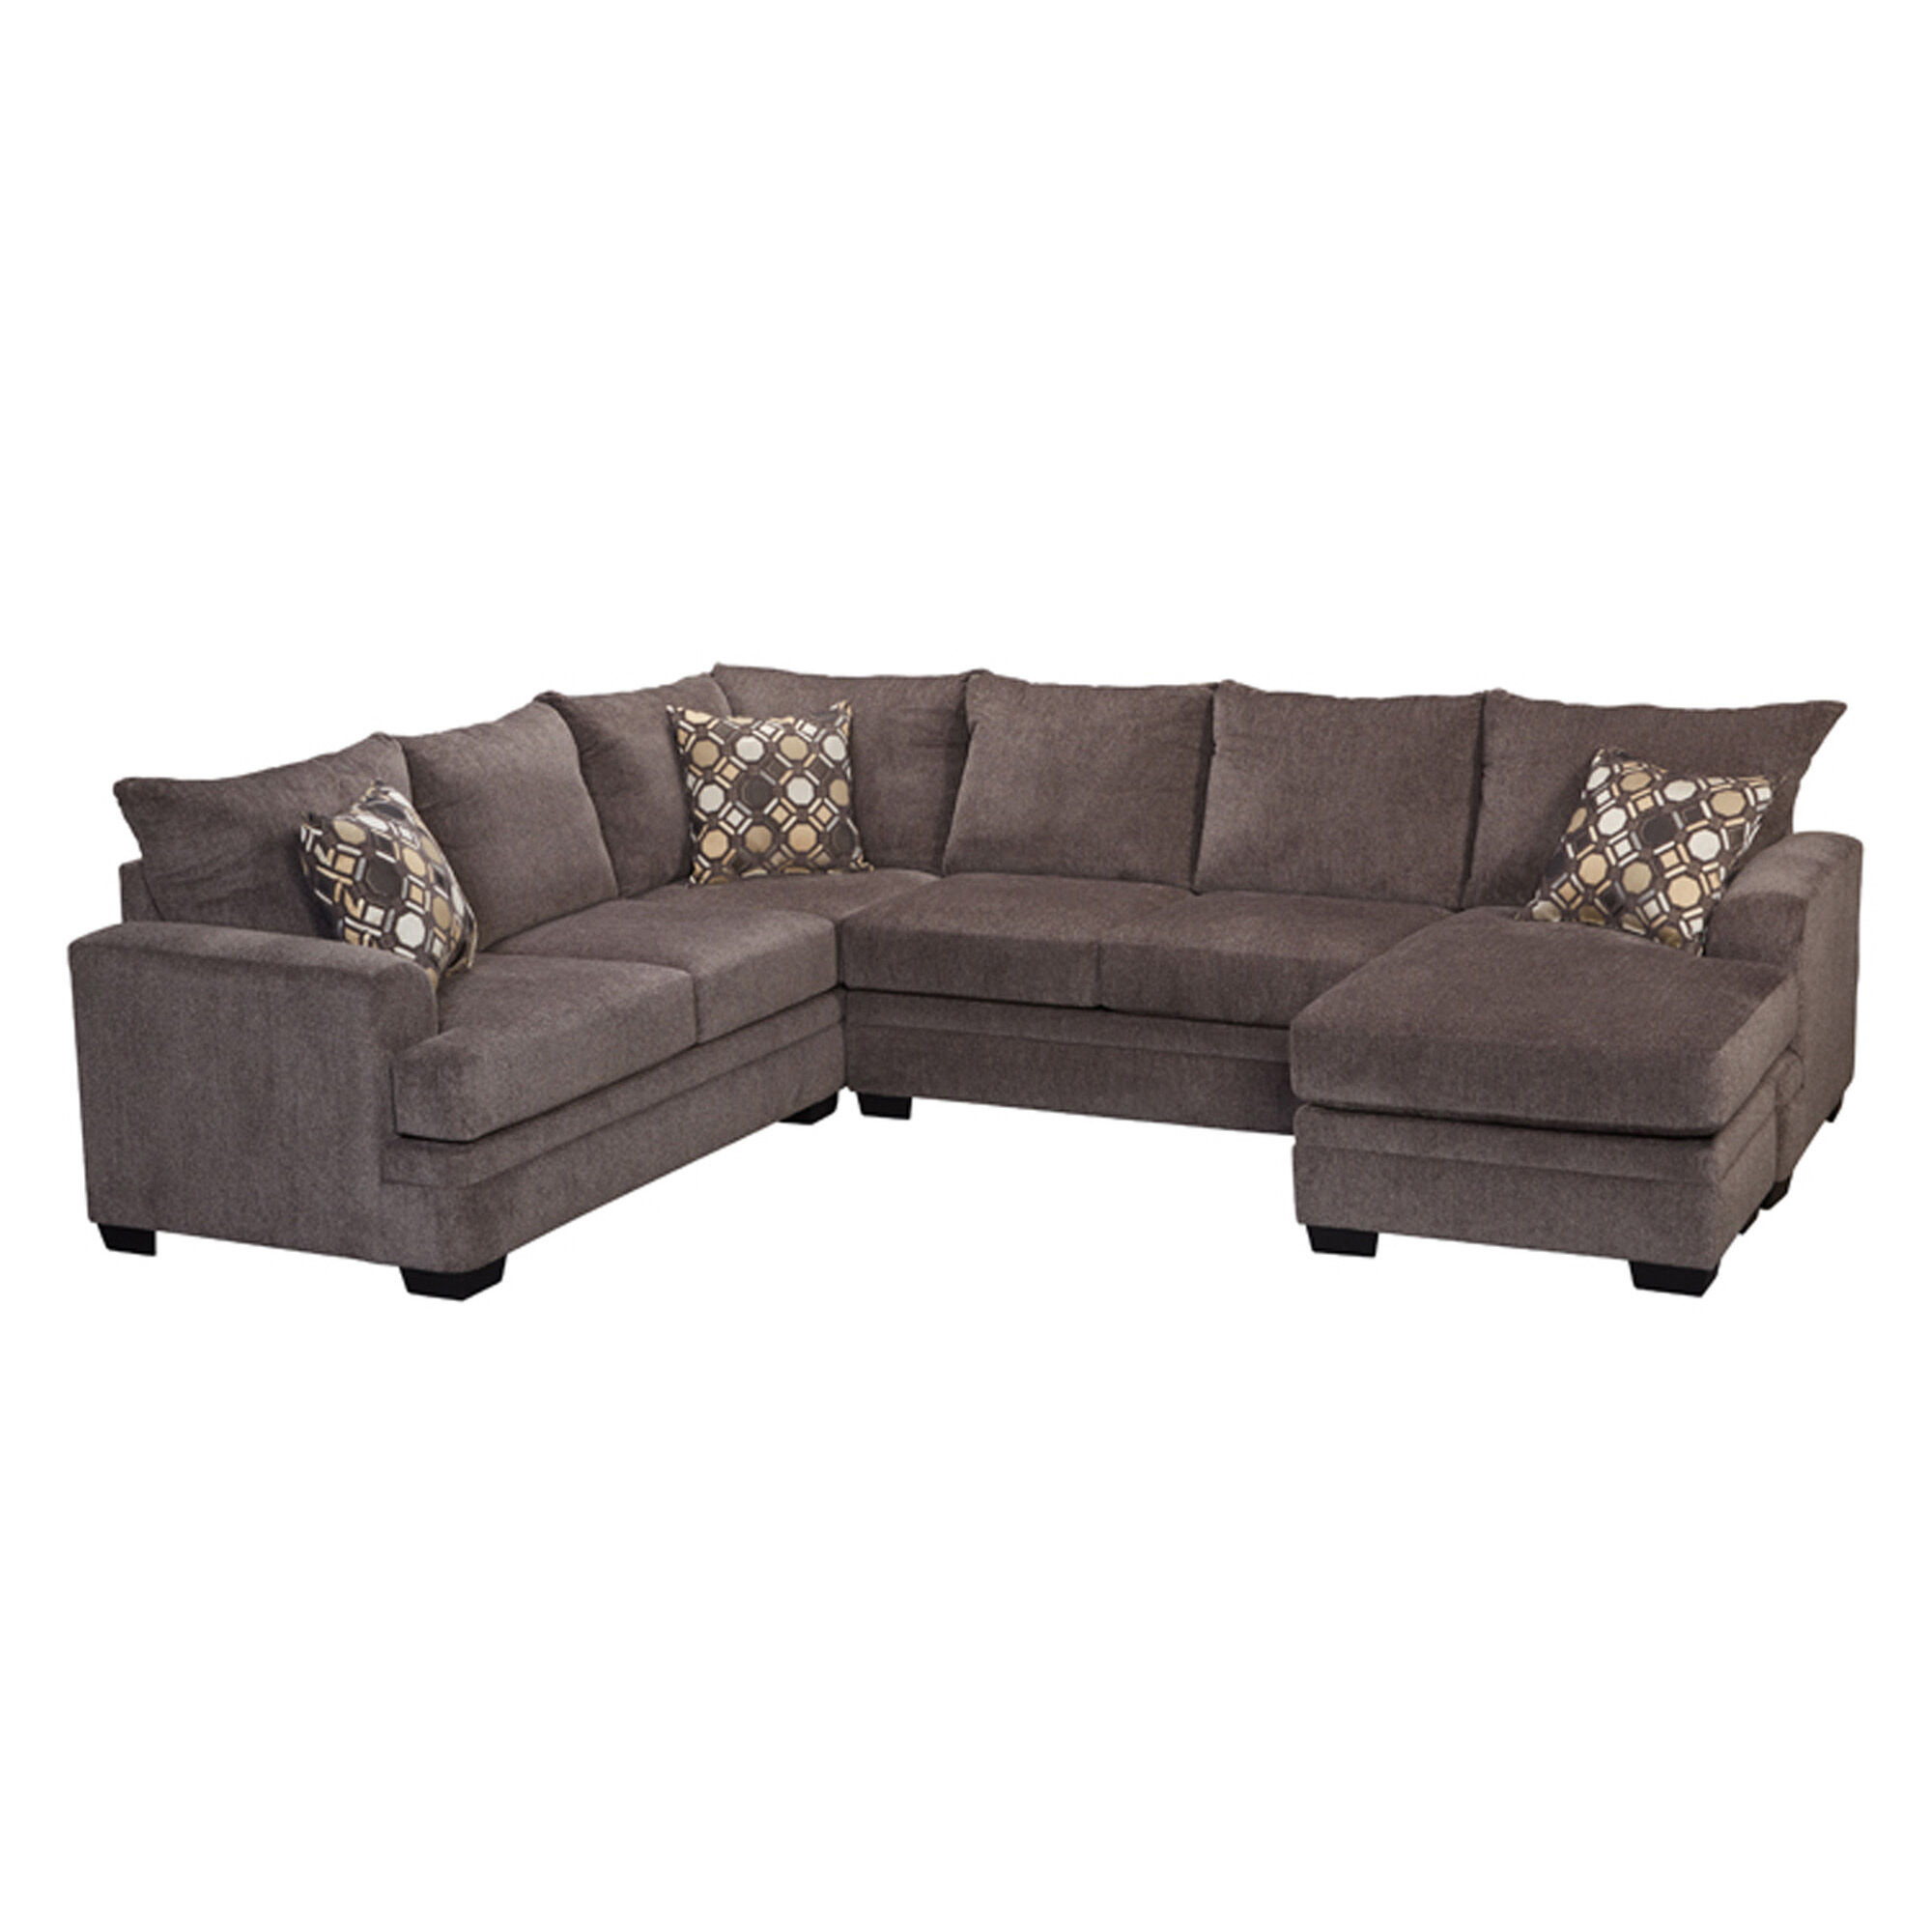 dark grey sectional sofa with chaise brandon distressed whiskey italian leather and chair rent to own sofas couches aaron s 2 piece kimberly living room collection